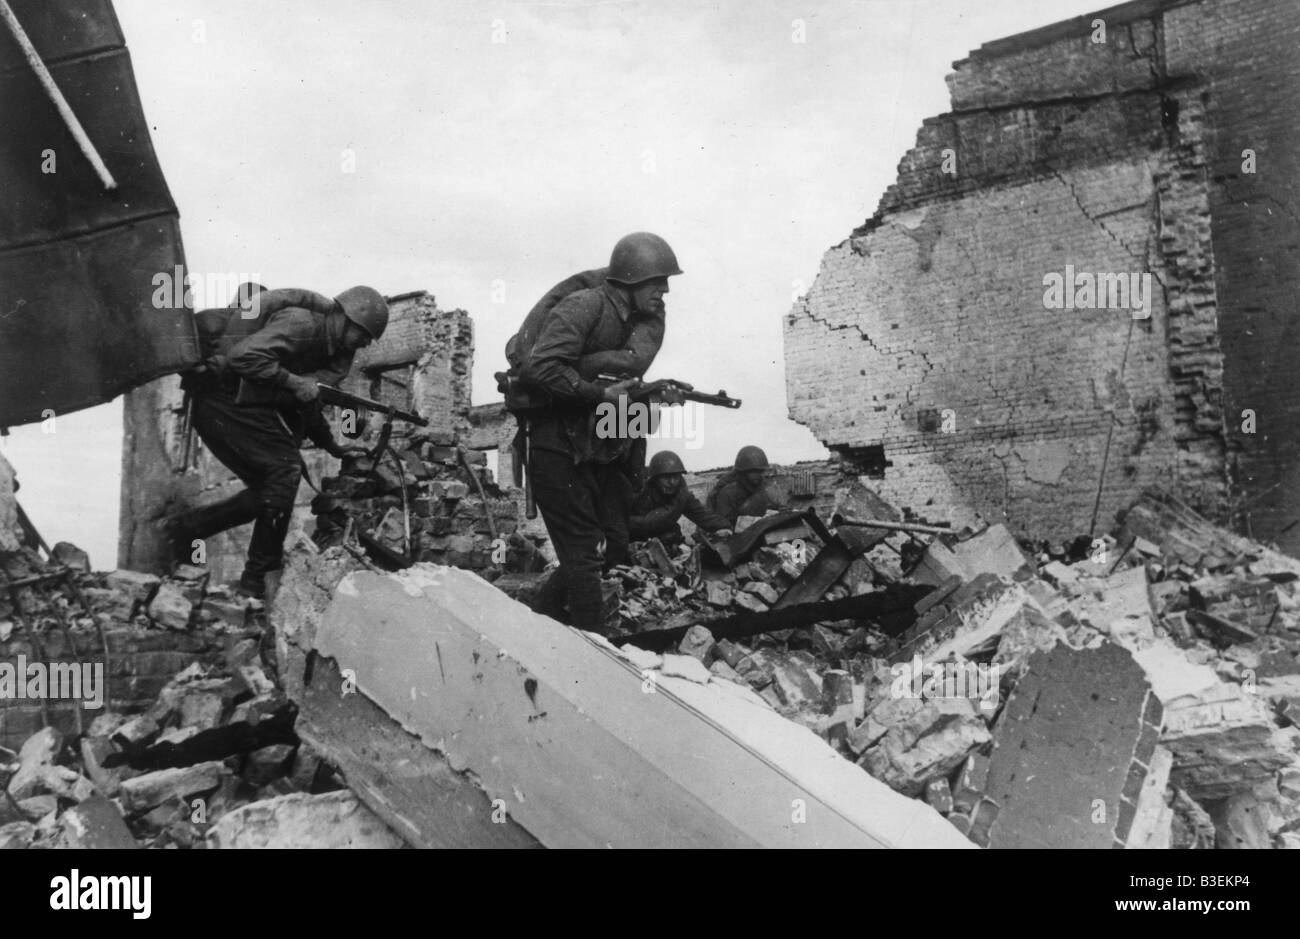 World War Two, Stalingrad/November 1942 - Stock Image